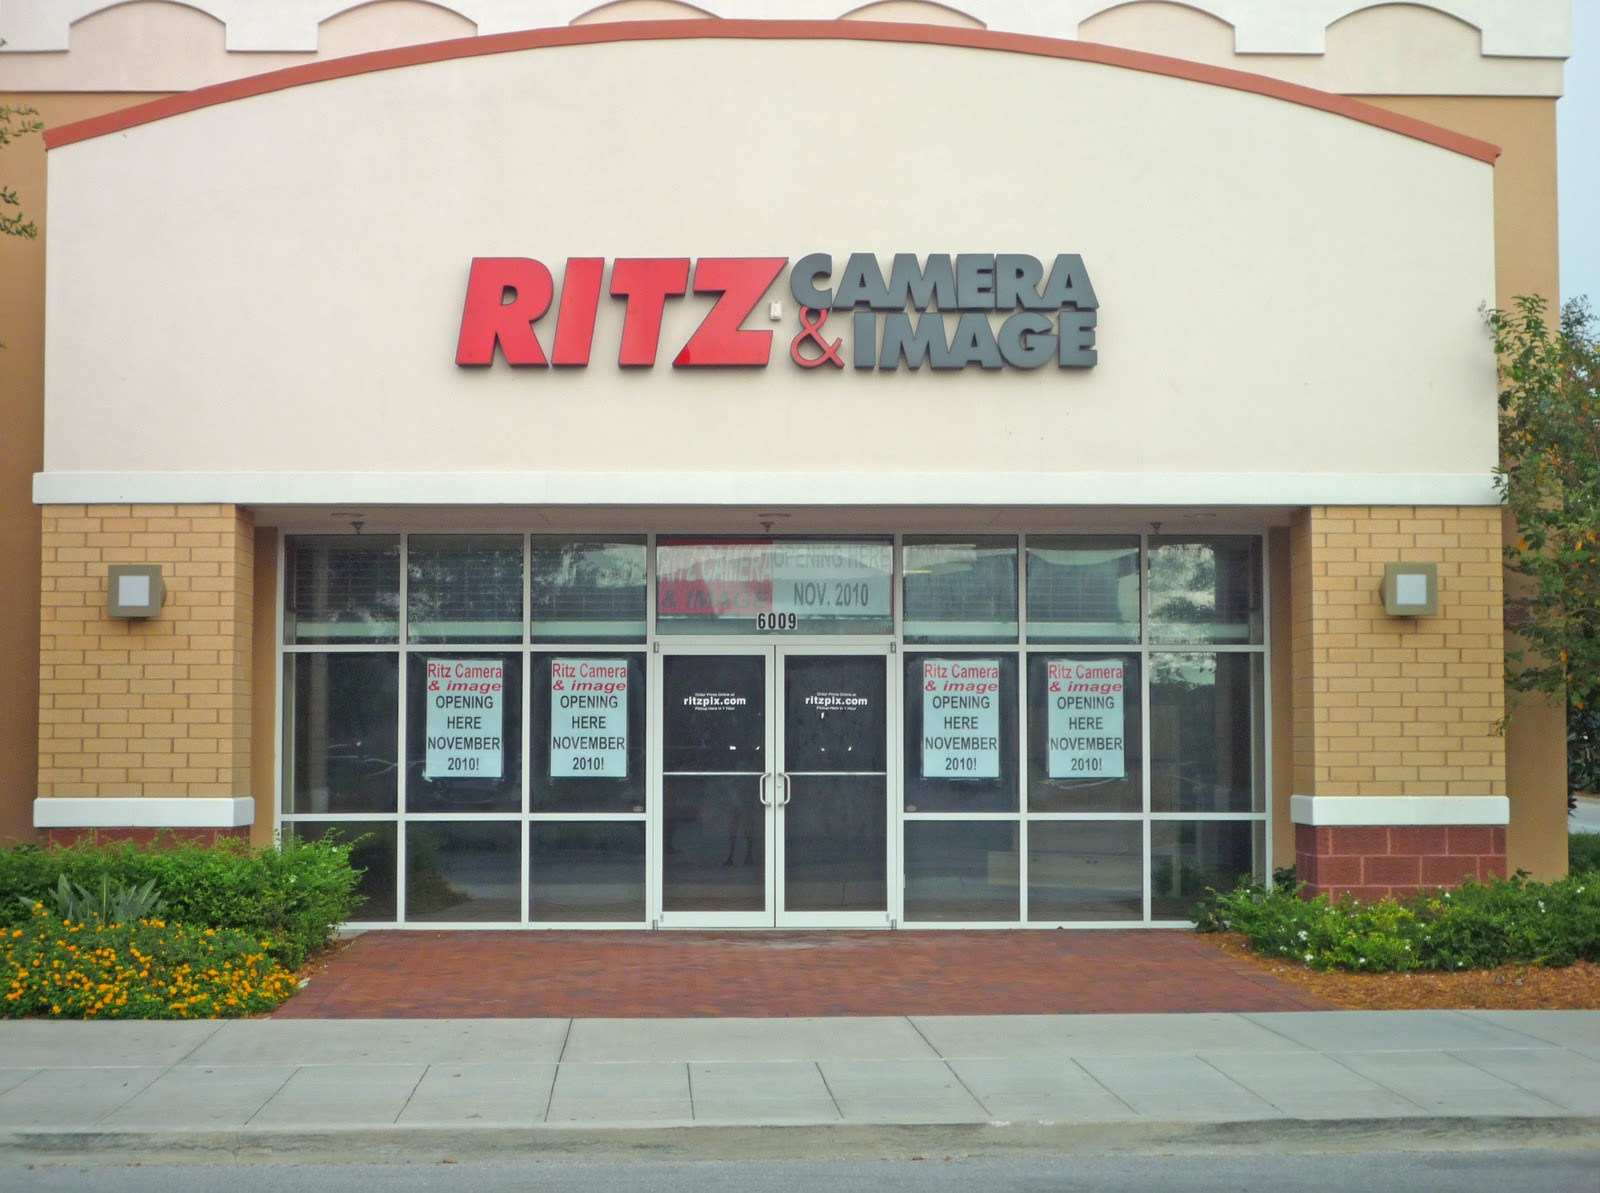 Weinsweig said Ritz Camera plans to go up for auction in September. Family-owned Ritz Camera Centers, the predecessor to Ritz Camera & Image, was founded as a portrait studio in by Benjamin Ritz, in the Ritz Hotel in Atlantic City, New Jersey.